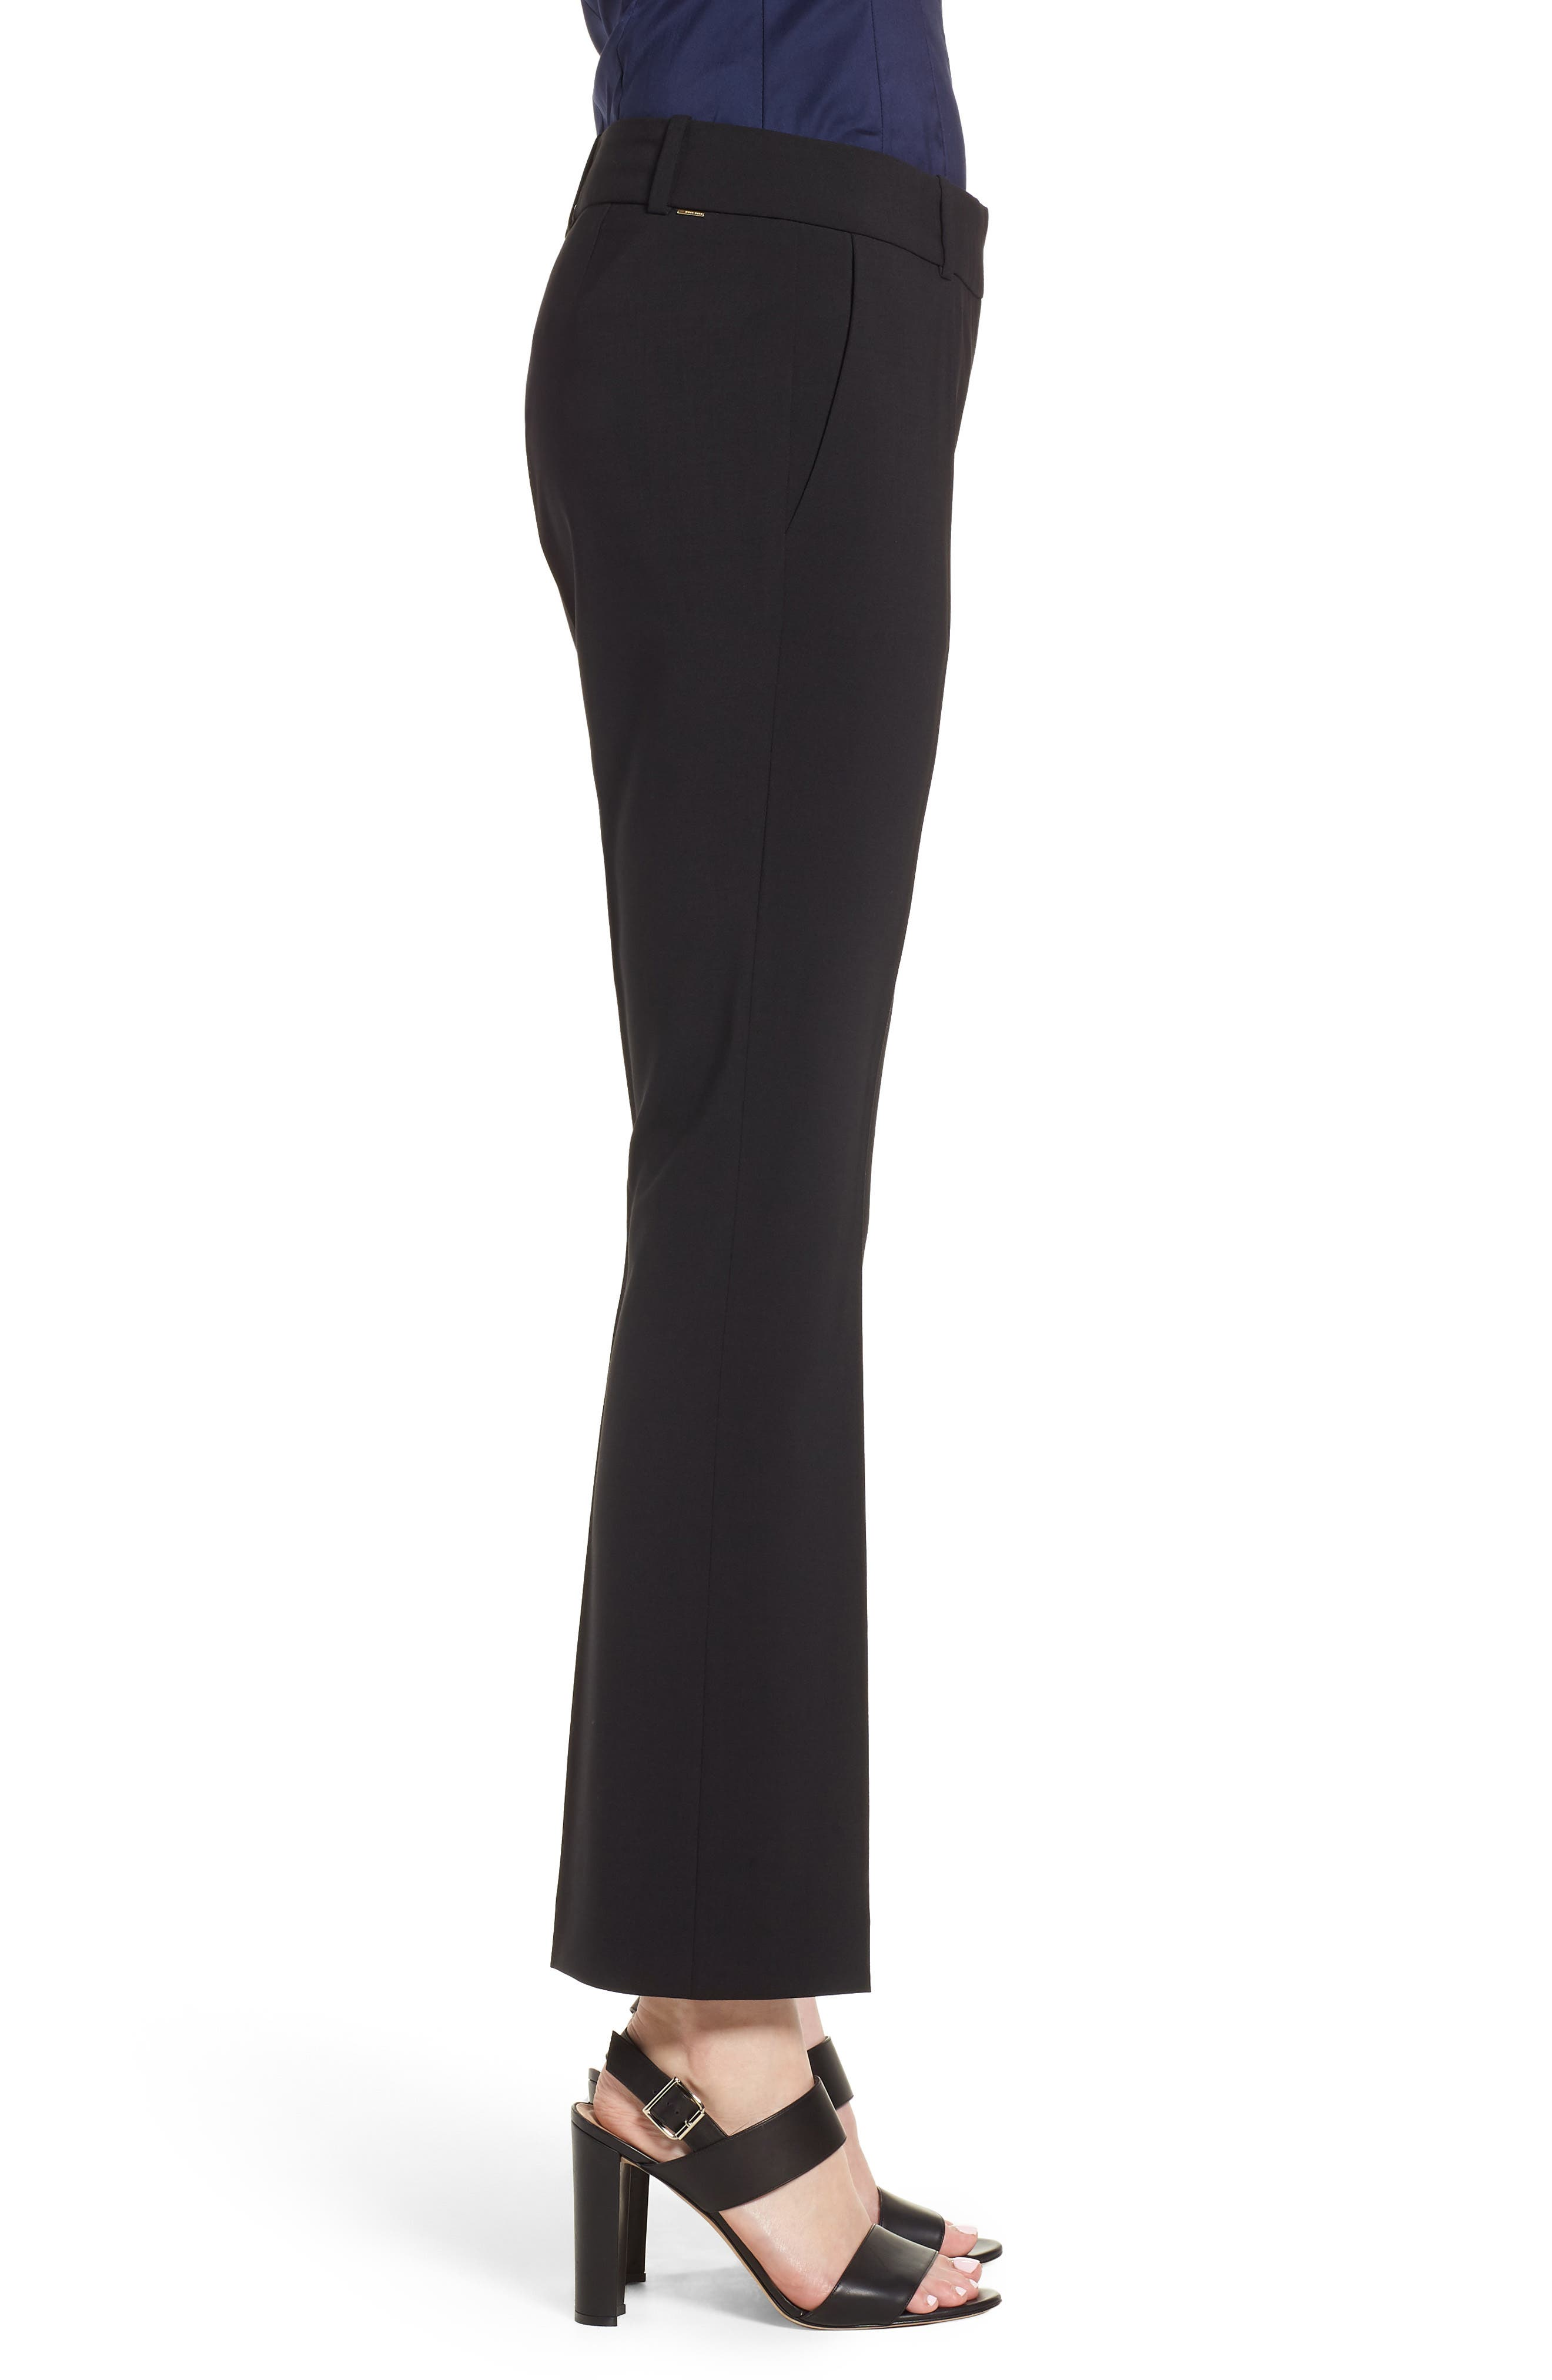 Talenara Tropical Stretch Wool Ankle Trousers,                             Alternate thumbnail 3, color,                             Black